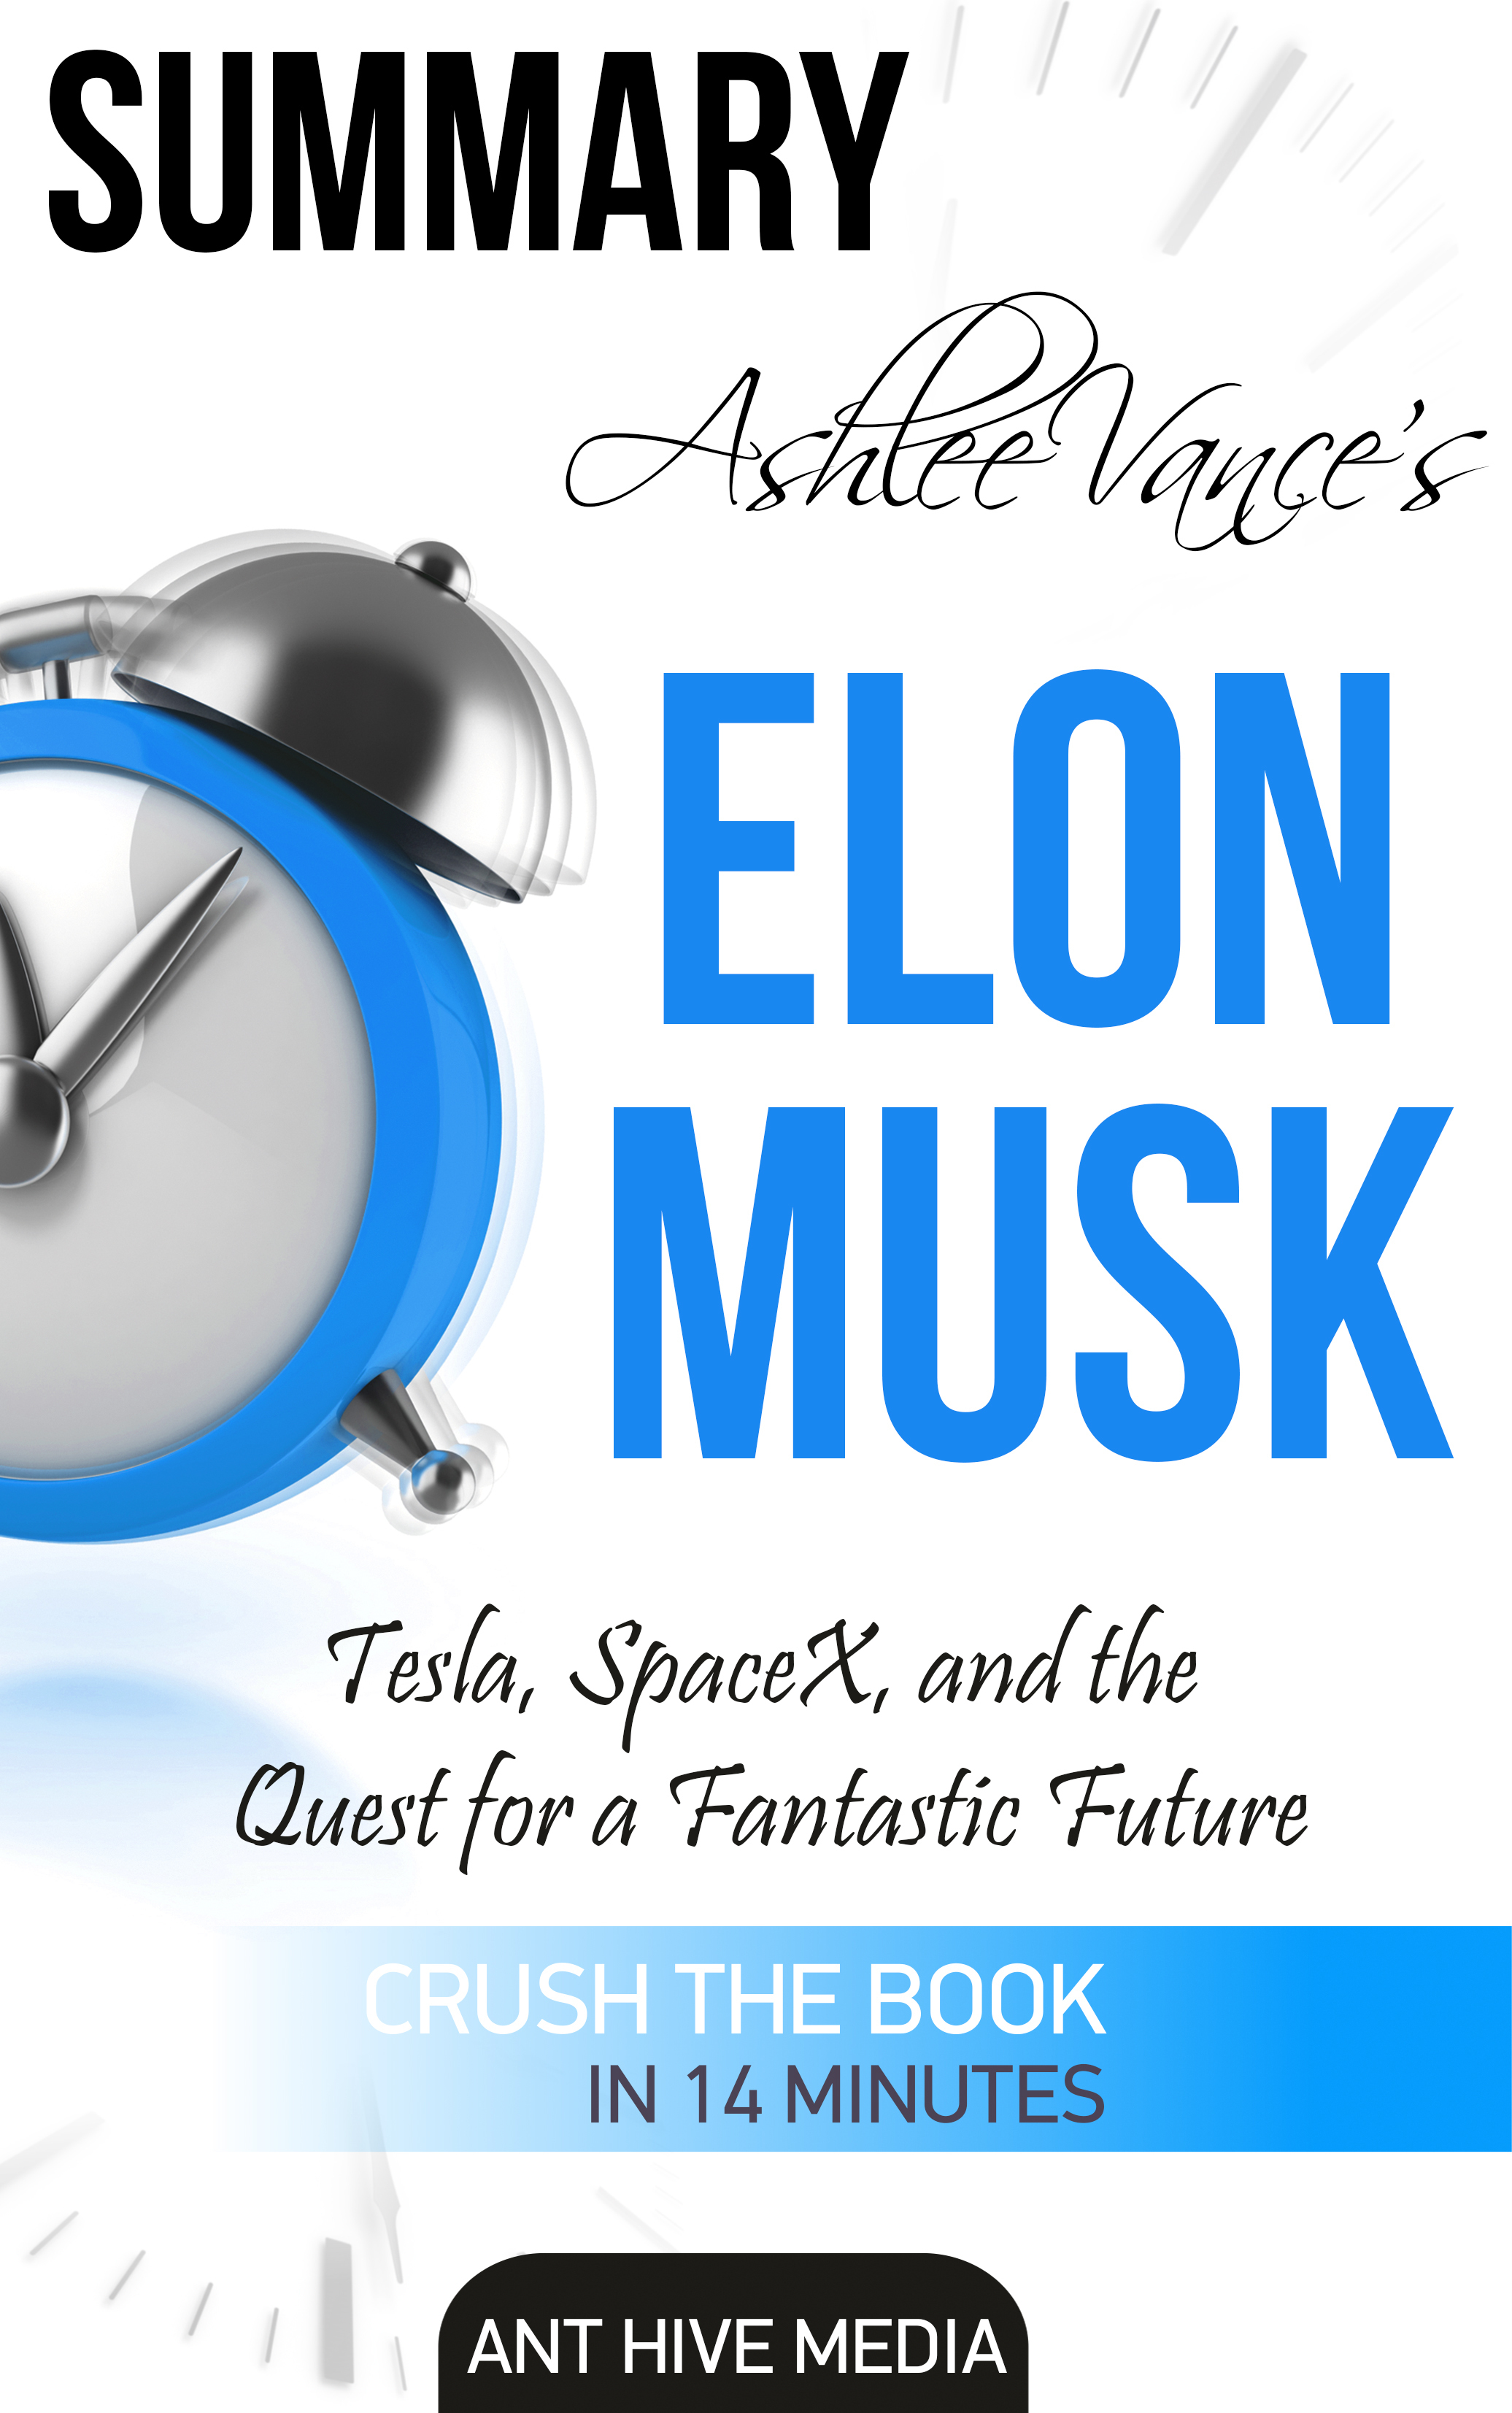 Ashlee Vance's Elon Musk: Tesla, SpaceX, and the Quest for a Fantastic Future | Summary